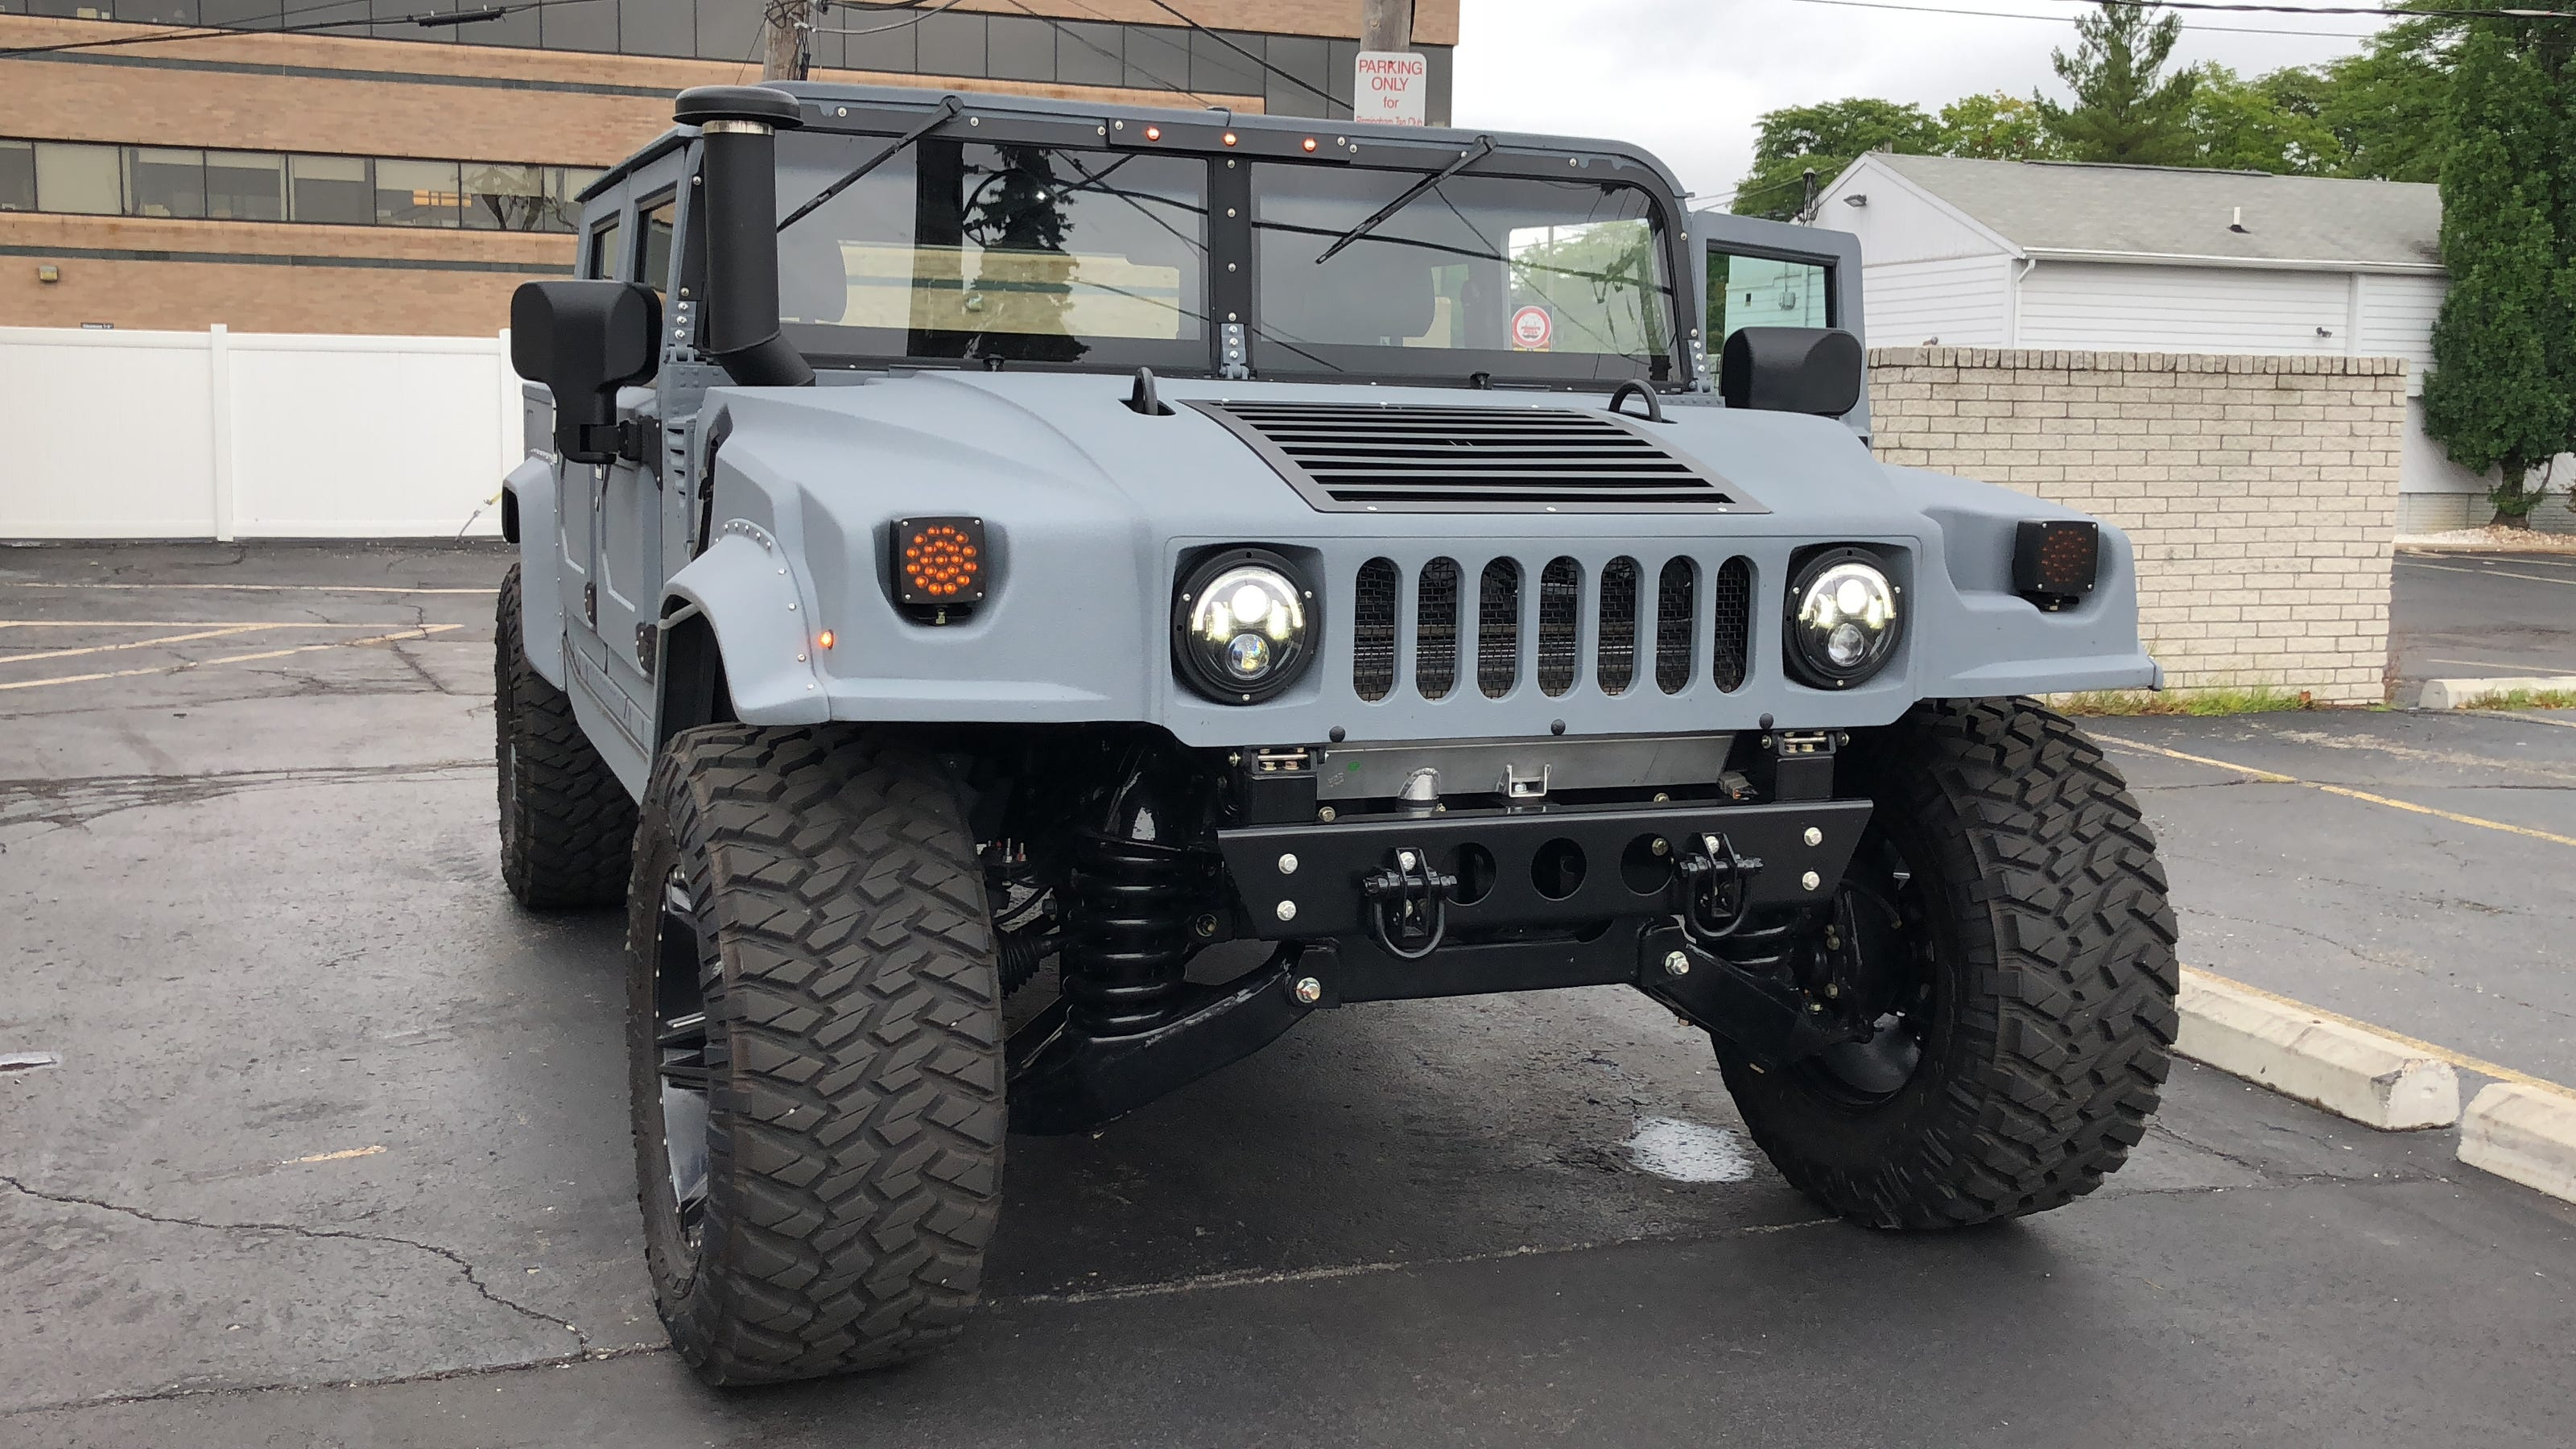 Hummer H1 SUV is back, and outrageous in new ways